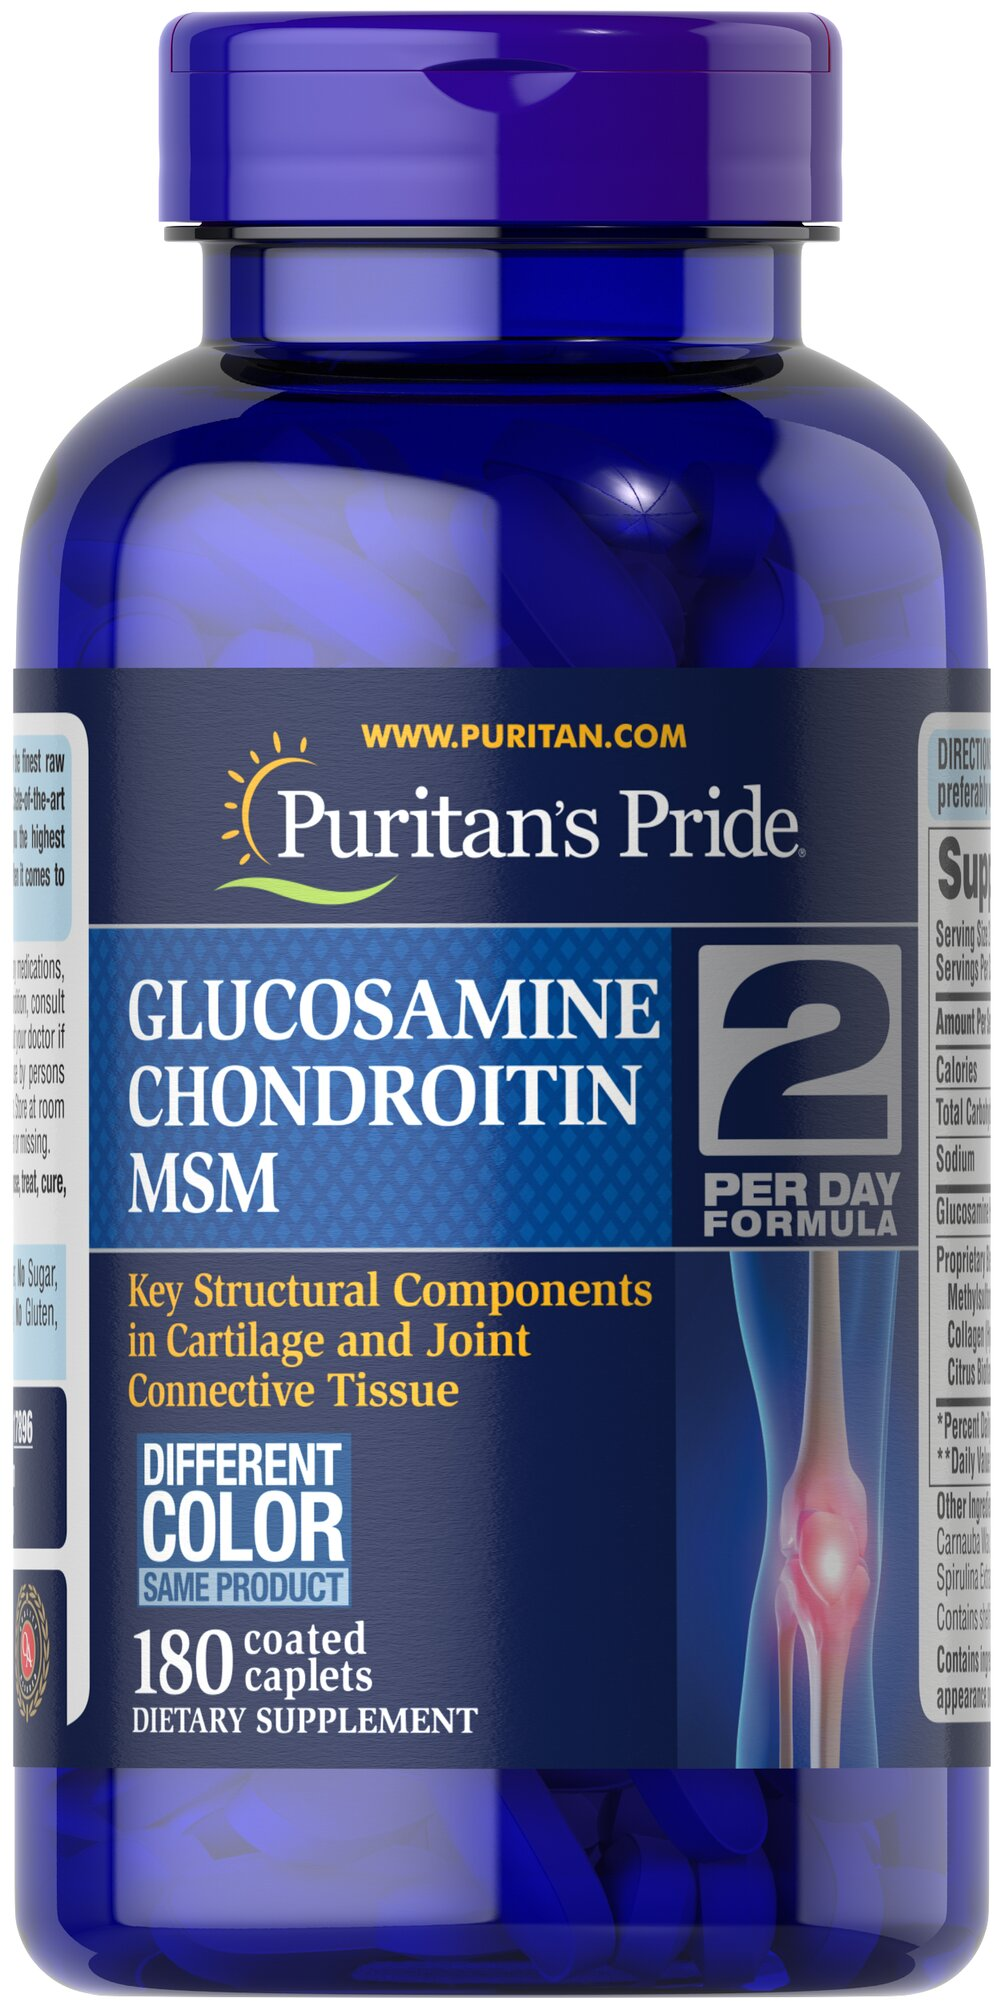 Triple Strength Glucosamine, Chondroitin & MSM Joint Soother® <p>Lubricates joints to improve flexibility**</p><p>Supports connective tissue in and around the joints**</p><p>Triple Strength Glucosamine, Chondroitin and MSM is the most powerful joint soother yet!** Just two caplets per day will give you triple strength protection with 1500 mg of Glucosamine, and 1700 mg of our joint nourishing proprietary blend.**</p> 180 Caplets  $55.99